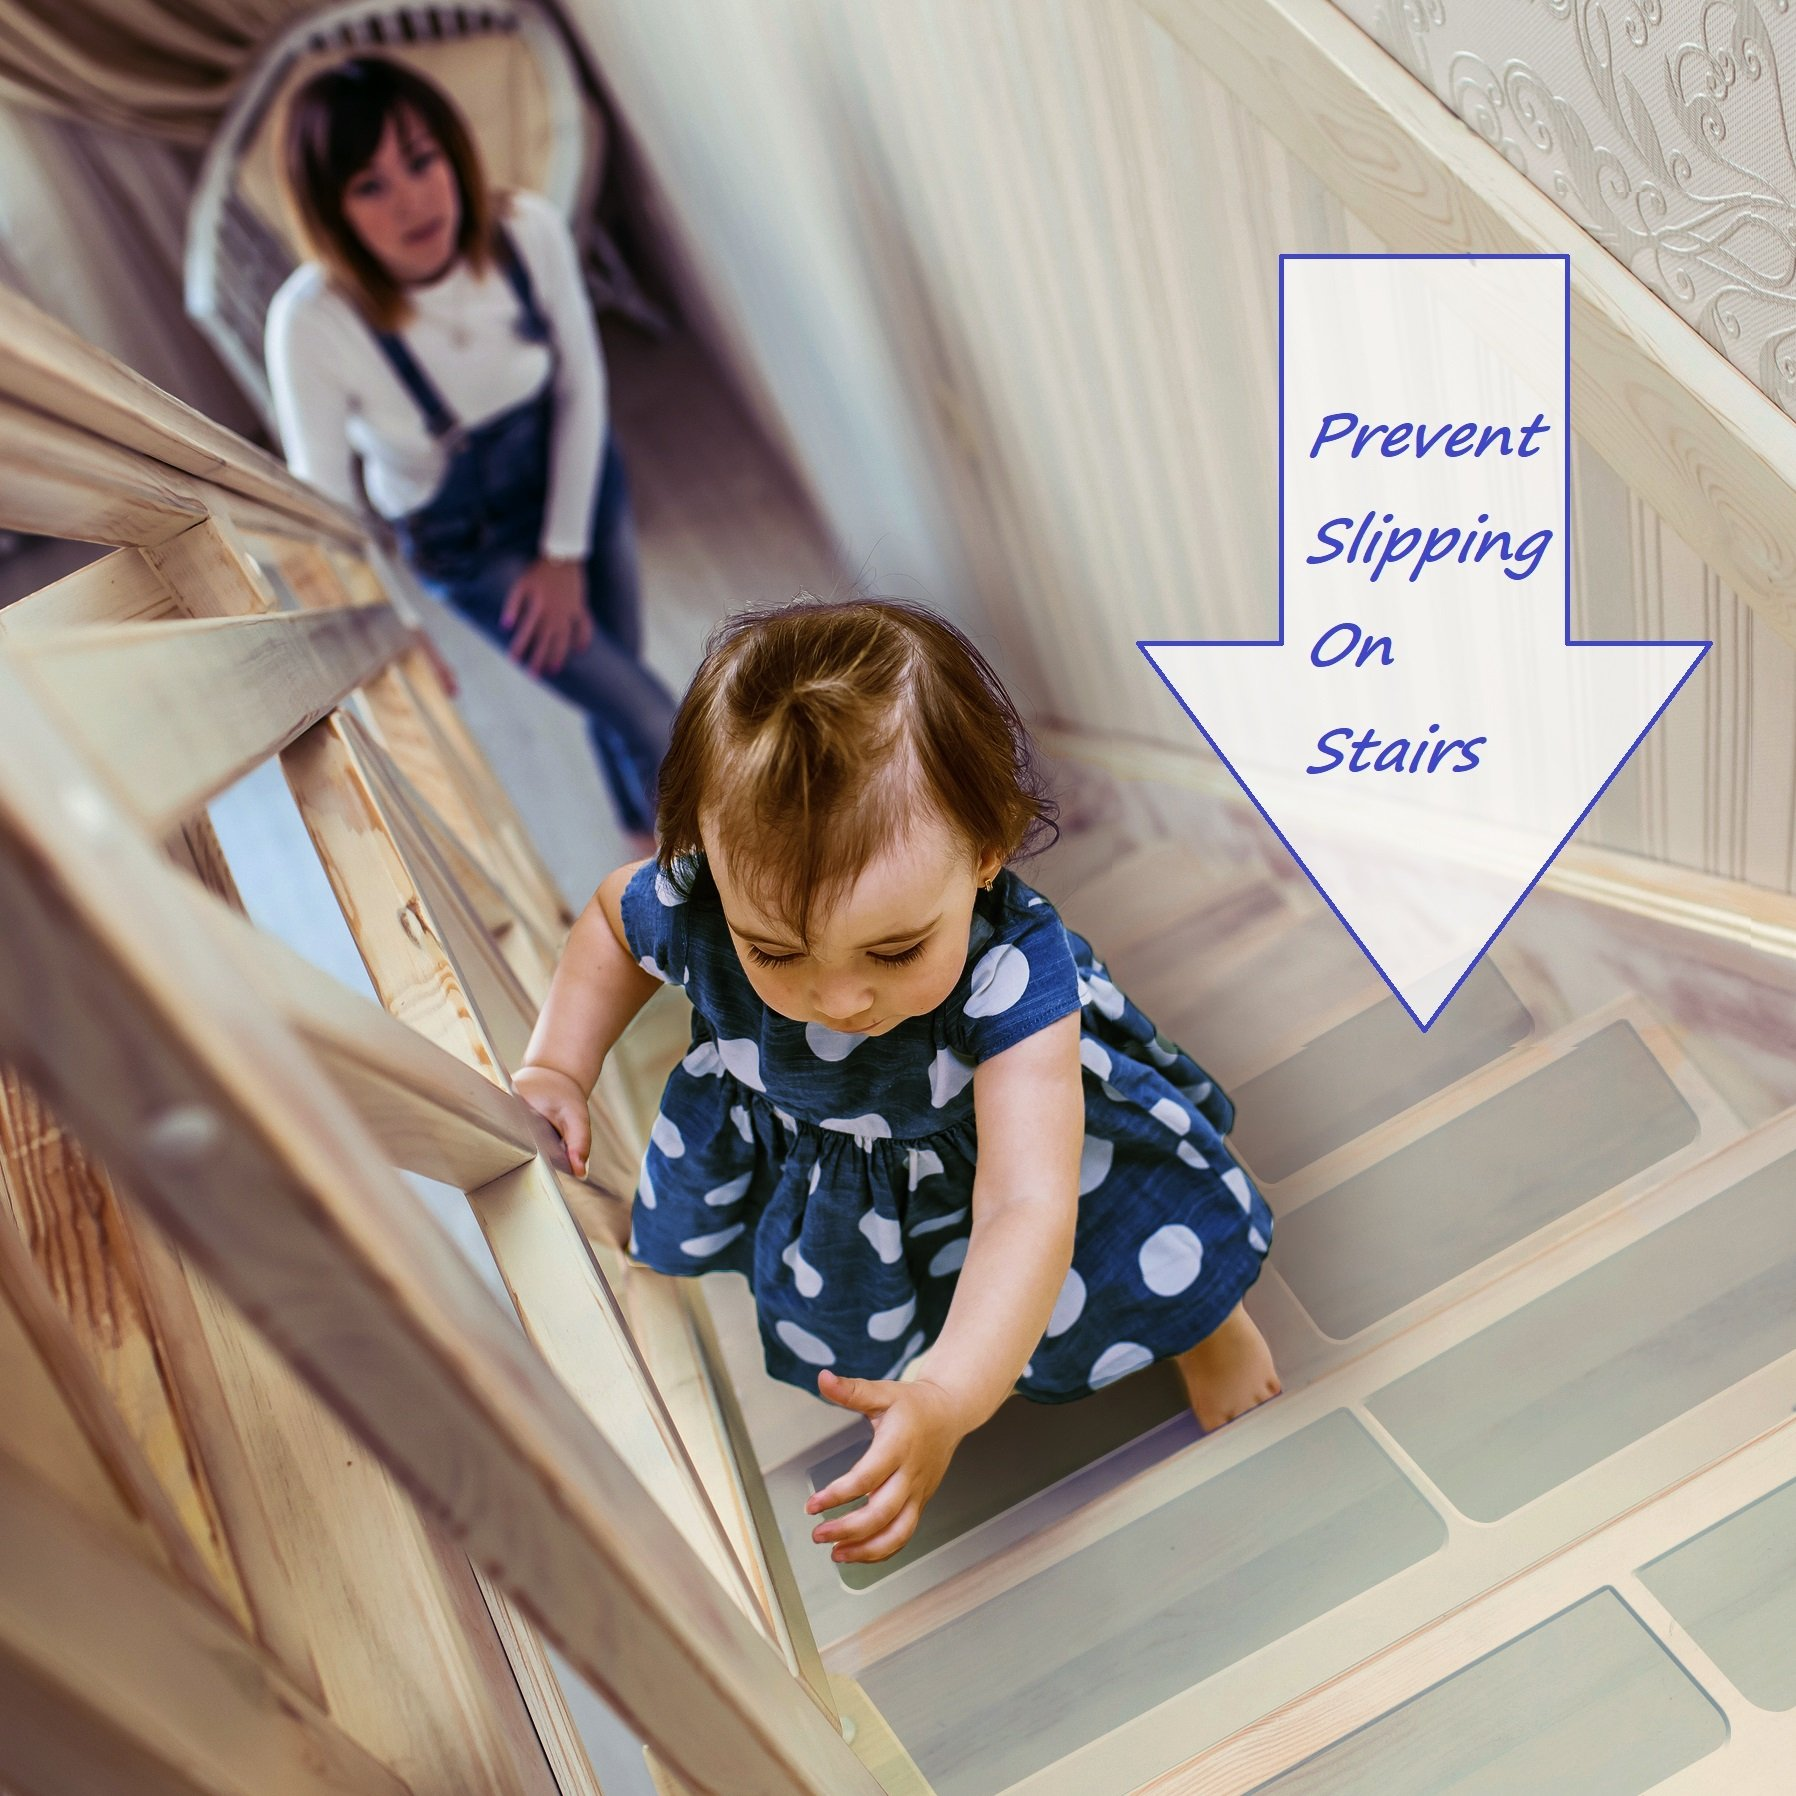 Charmant Details About StepStrips Clear Non Slip Adhesive Strips For Stairs To  Prevent Slipping And